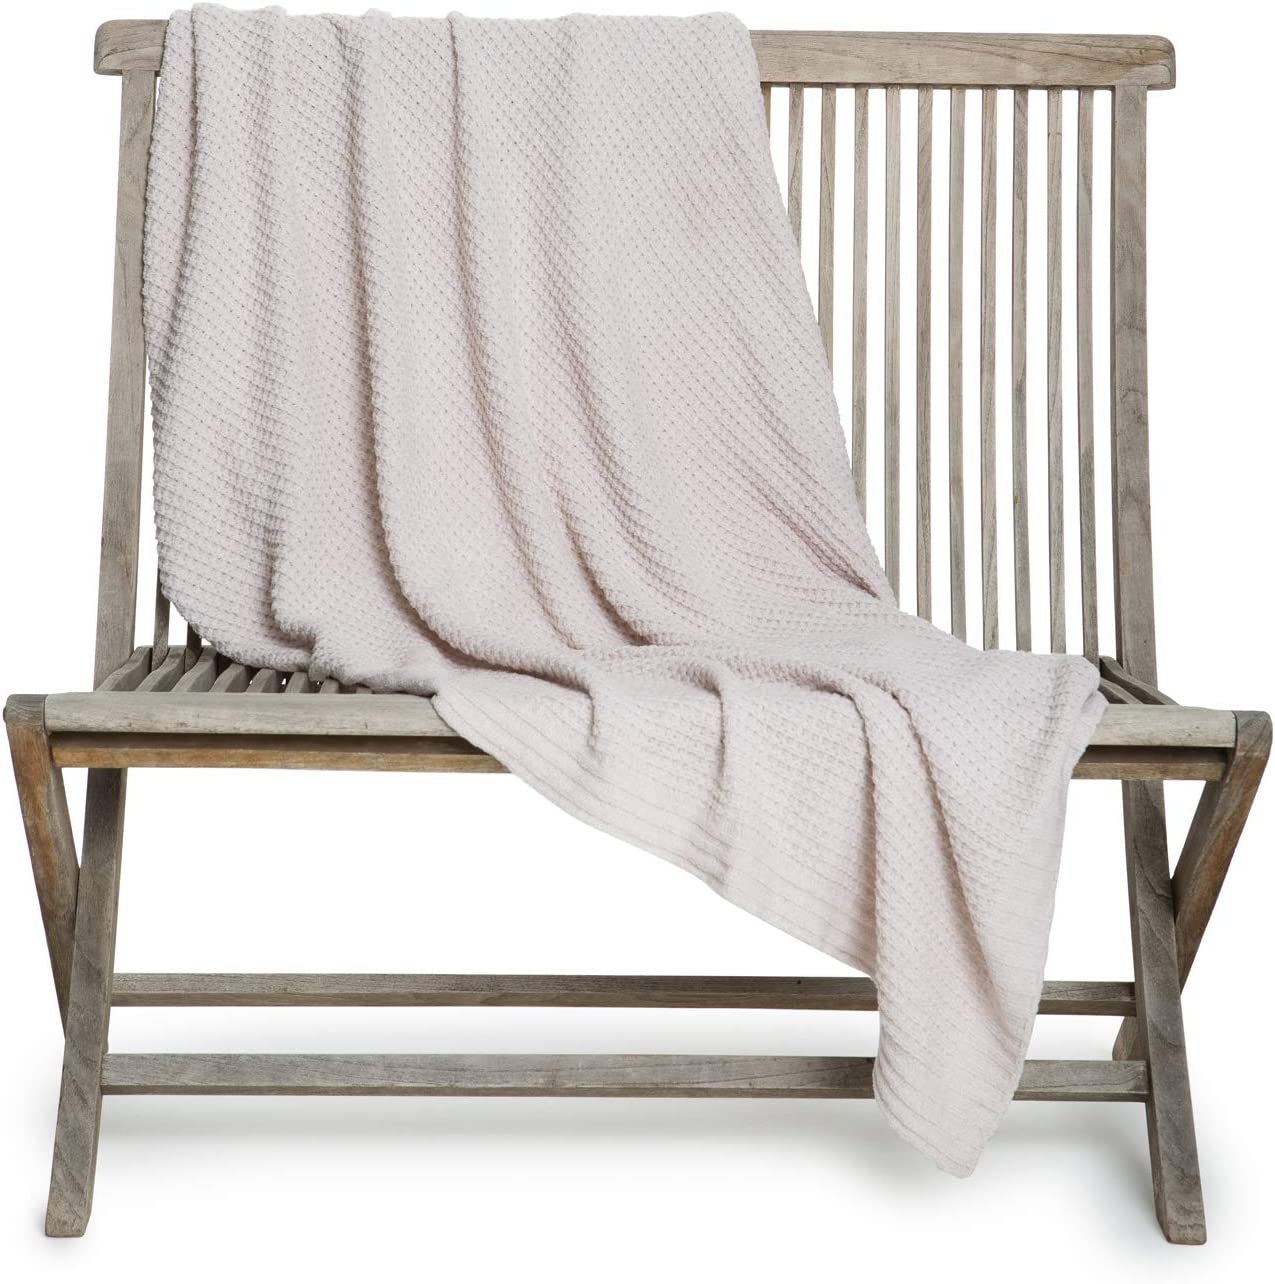 Barefoot Dreams Waffle Throw Blanket Heathered, Home Accessories, Hand Knit Look , Oatmeal